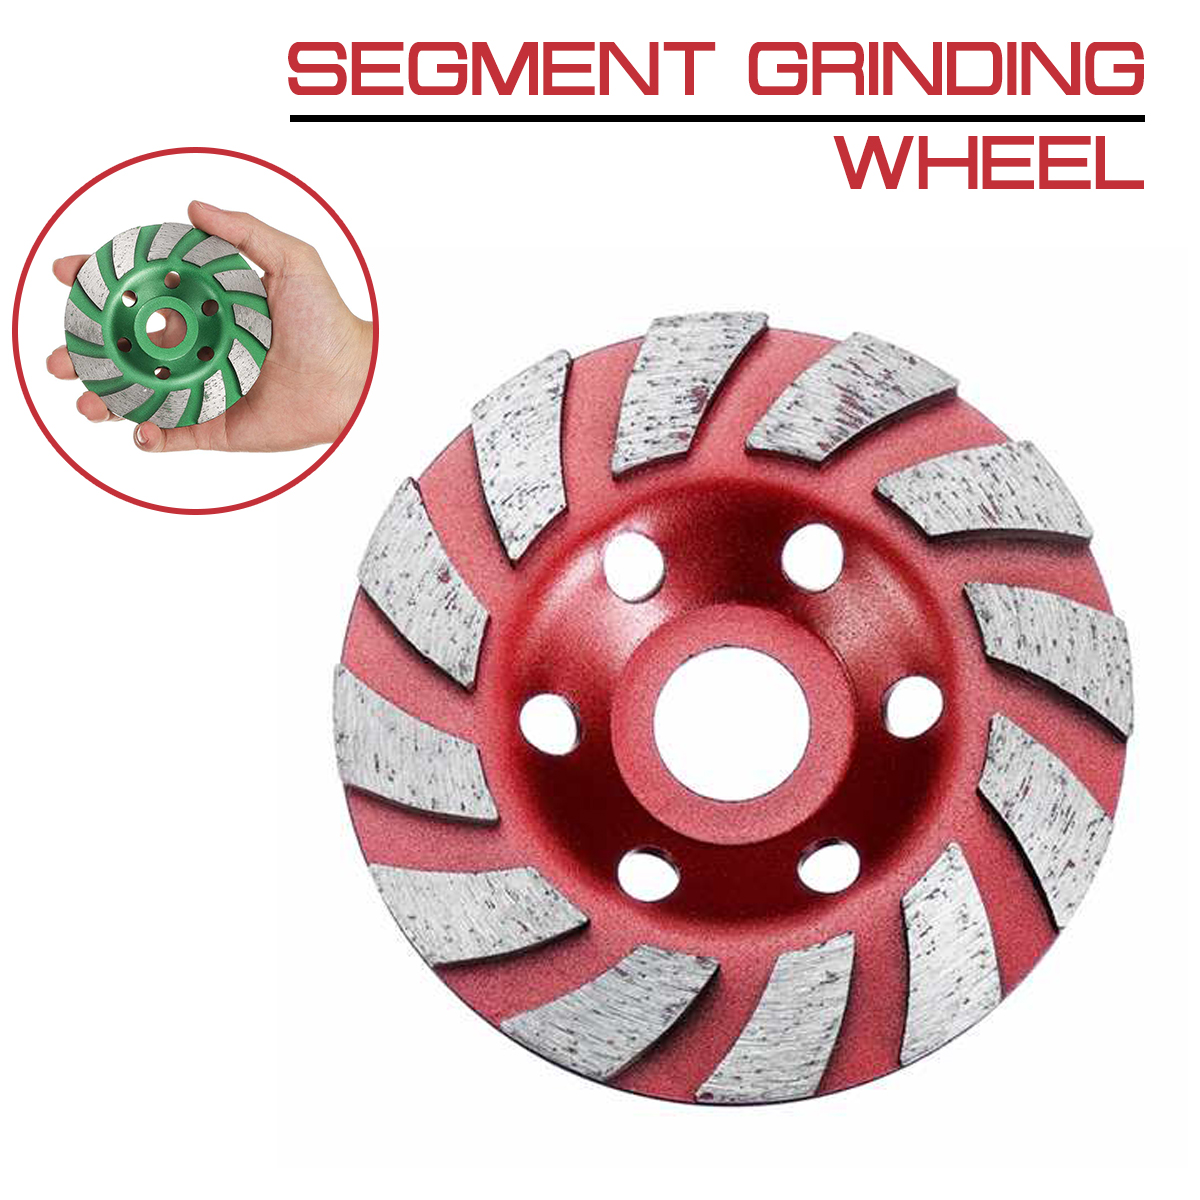 100mm/4 Inch Diamond Grinding Wheel Disc Bowl Shape Grinding Cup Stone Concrete Granite Ceramics Tools